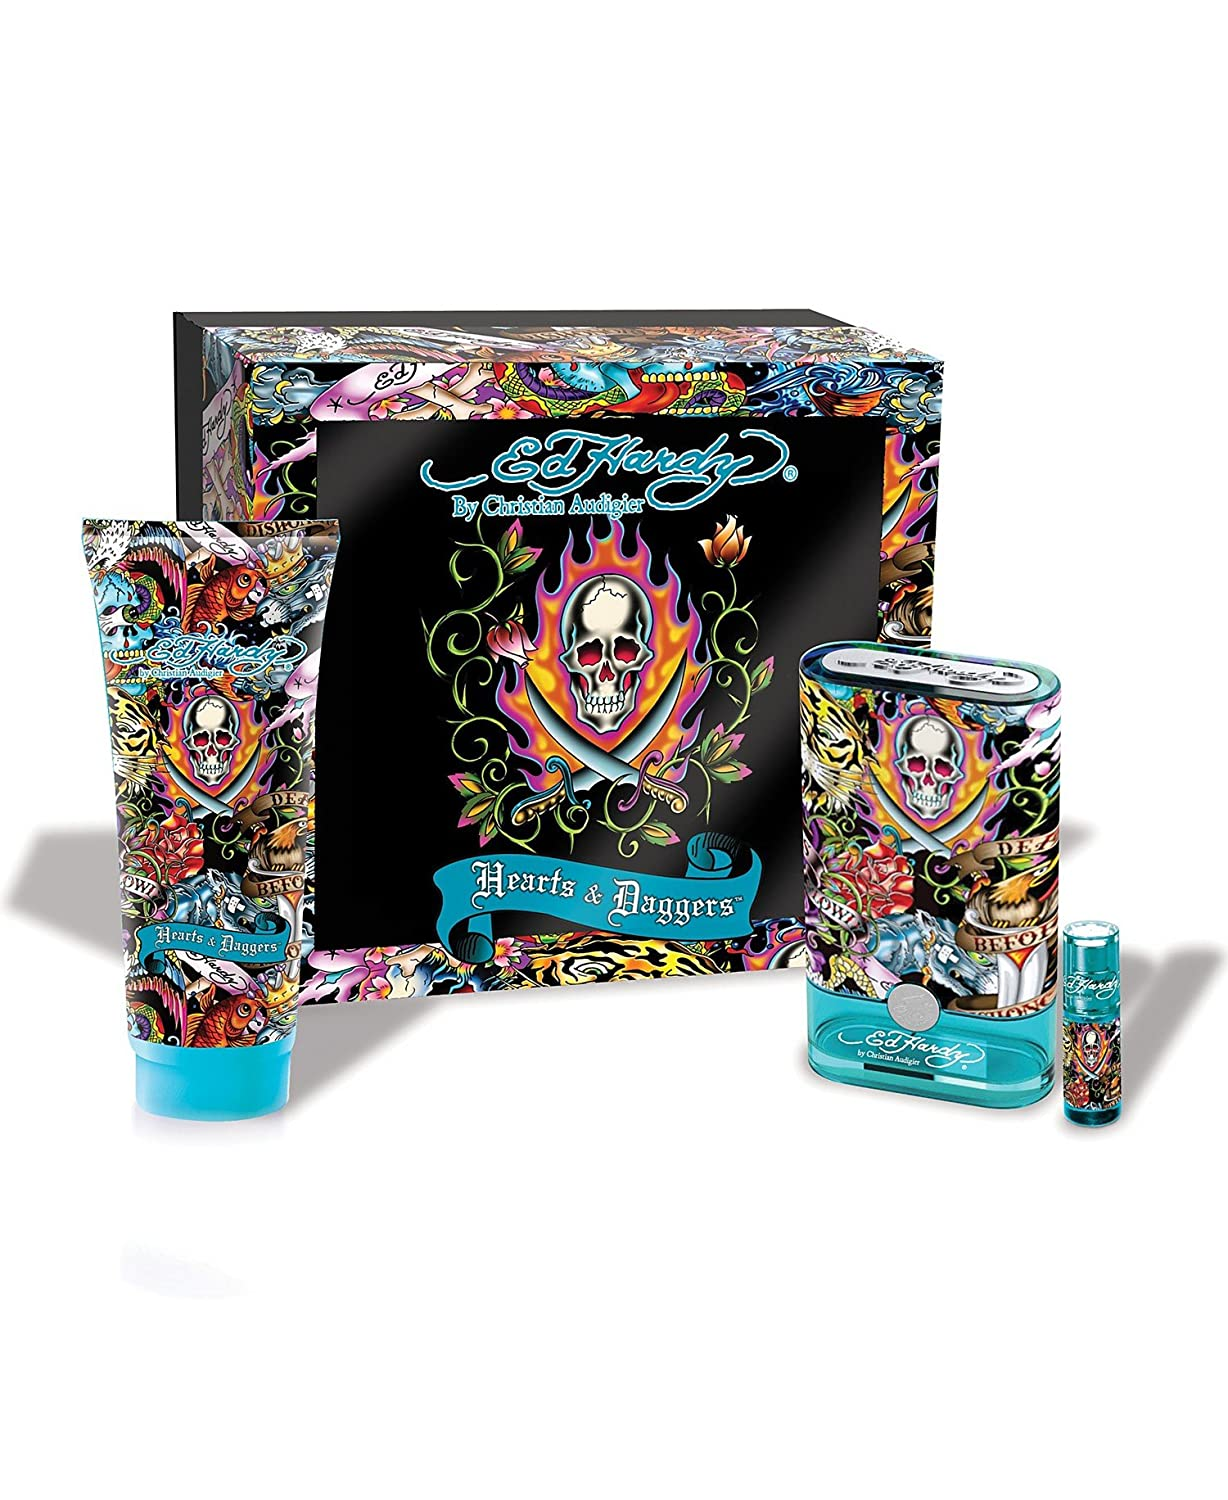 Ed Hardy Hearts & Daggers by Christian Audigier for Men 3 Piece Set Includes: 1.7 oz Eau de Toilette Spray + 3.0 oz Hair & Body Wash + 0.25 oz Eau de Toilette Travel Spray